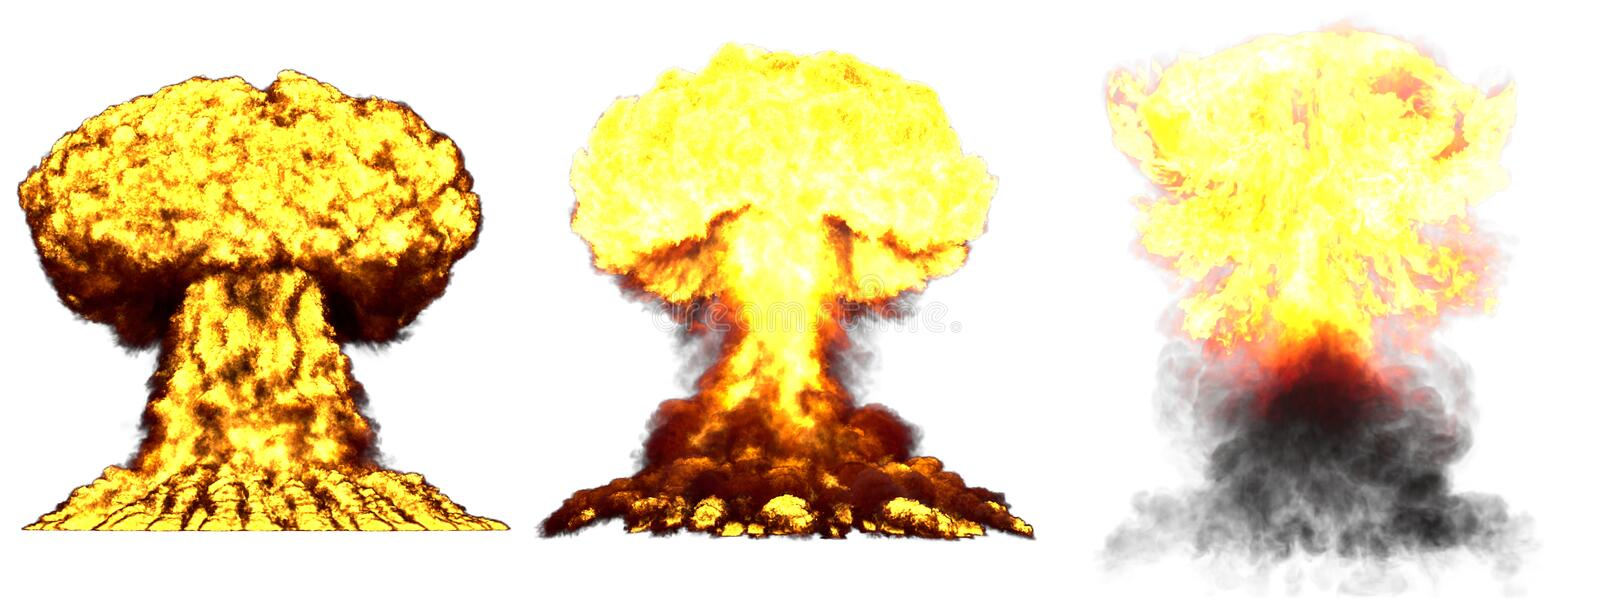 3D illustration of explosion - 3 big very detailed different phases mushroom cloud explosion of nuclear bomb with smoke and fire. 3 huge high detailed different royalty free stock photography